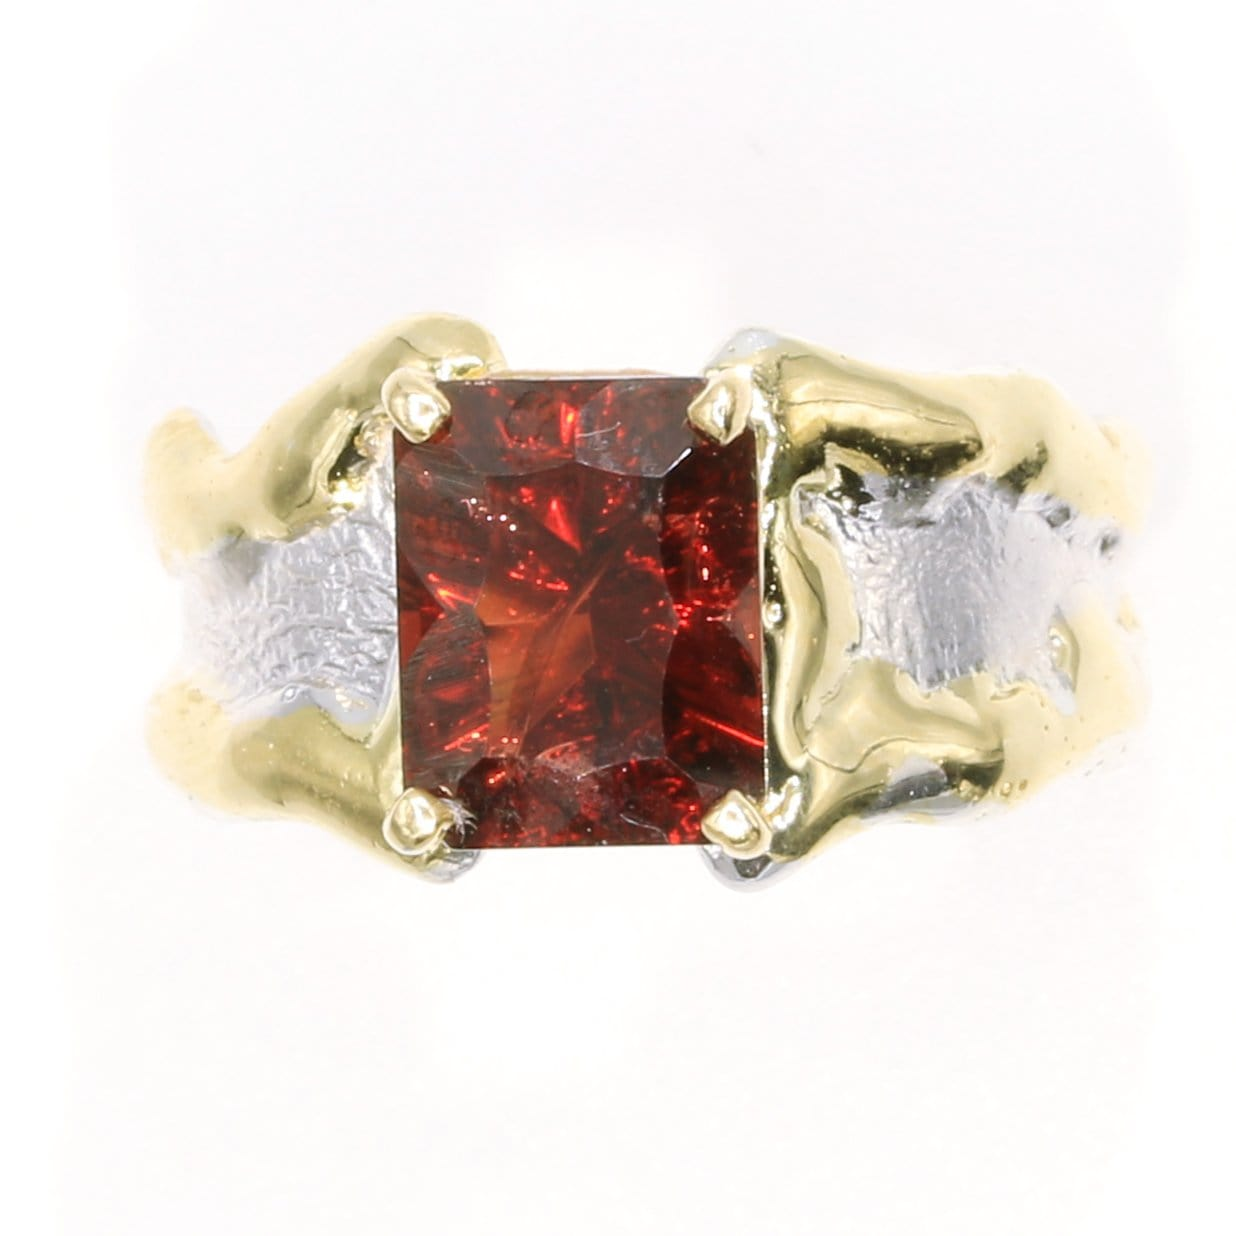 14K Gold & Crystalline Silver Garnet Ring - 35885-Fusion Designs-Renee Taylor Gallery